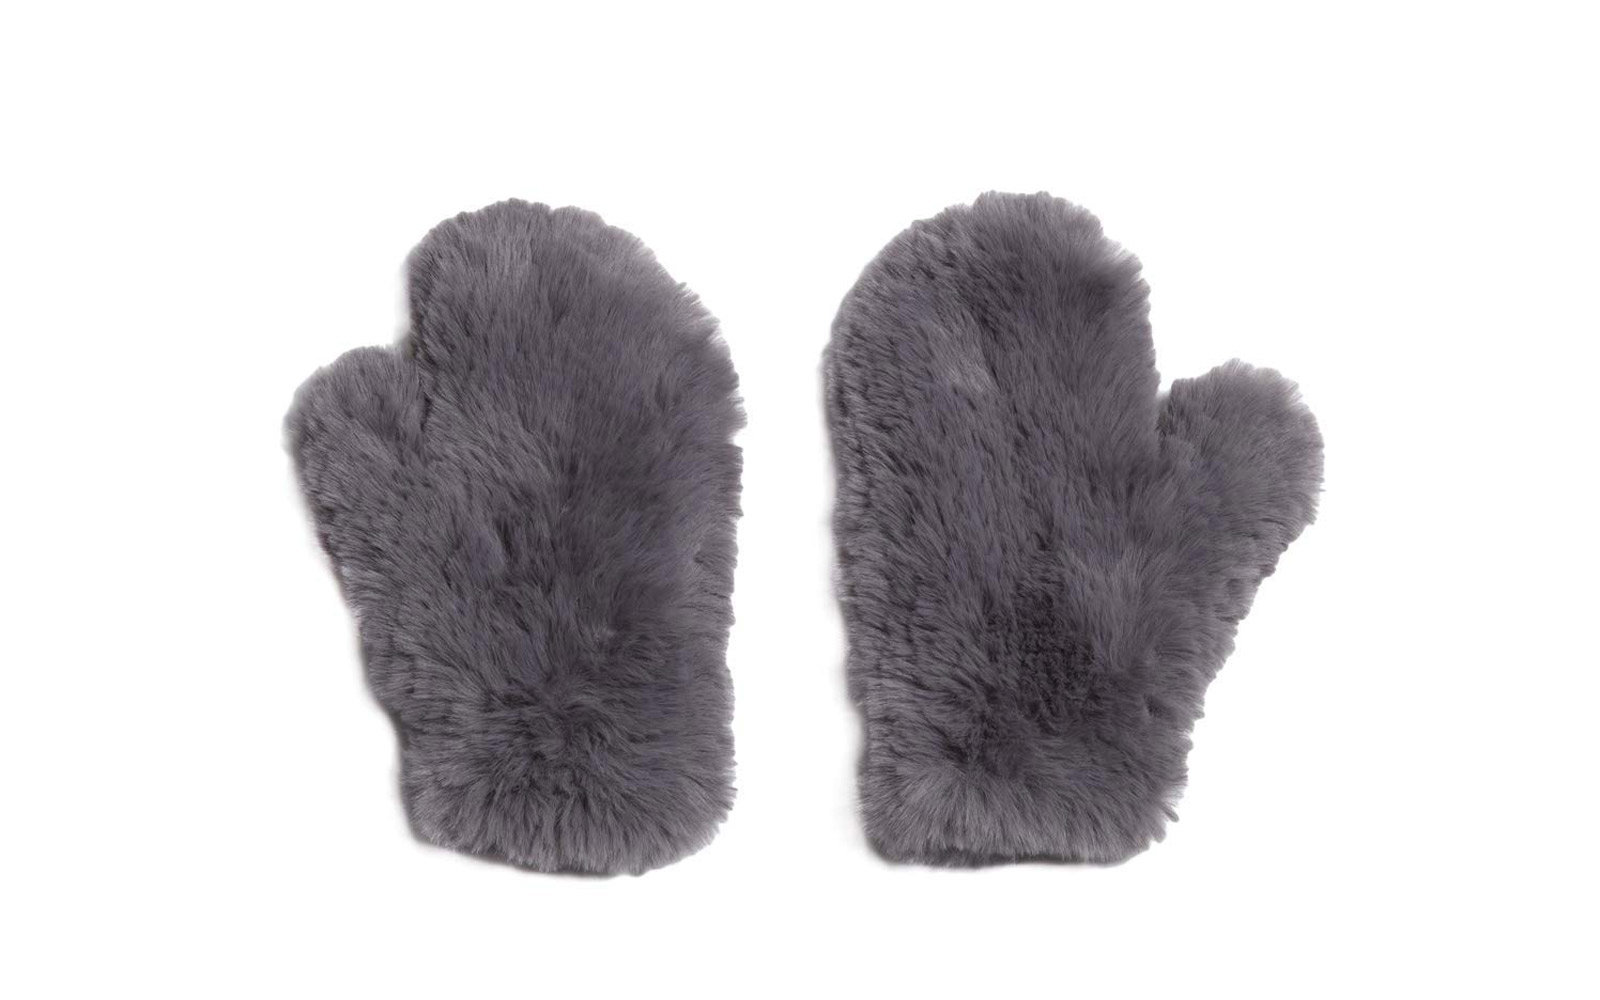 glamourpuss nyc mittens oprah favorite things